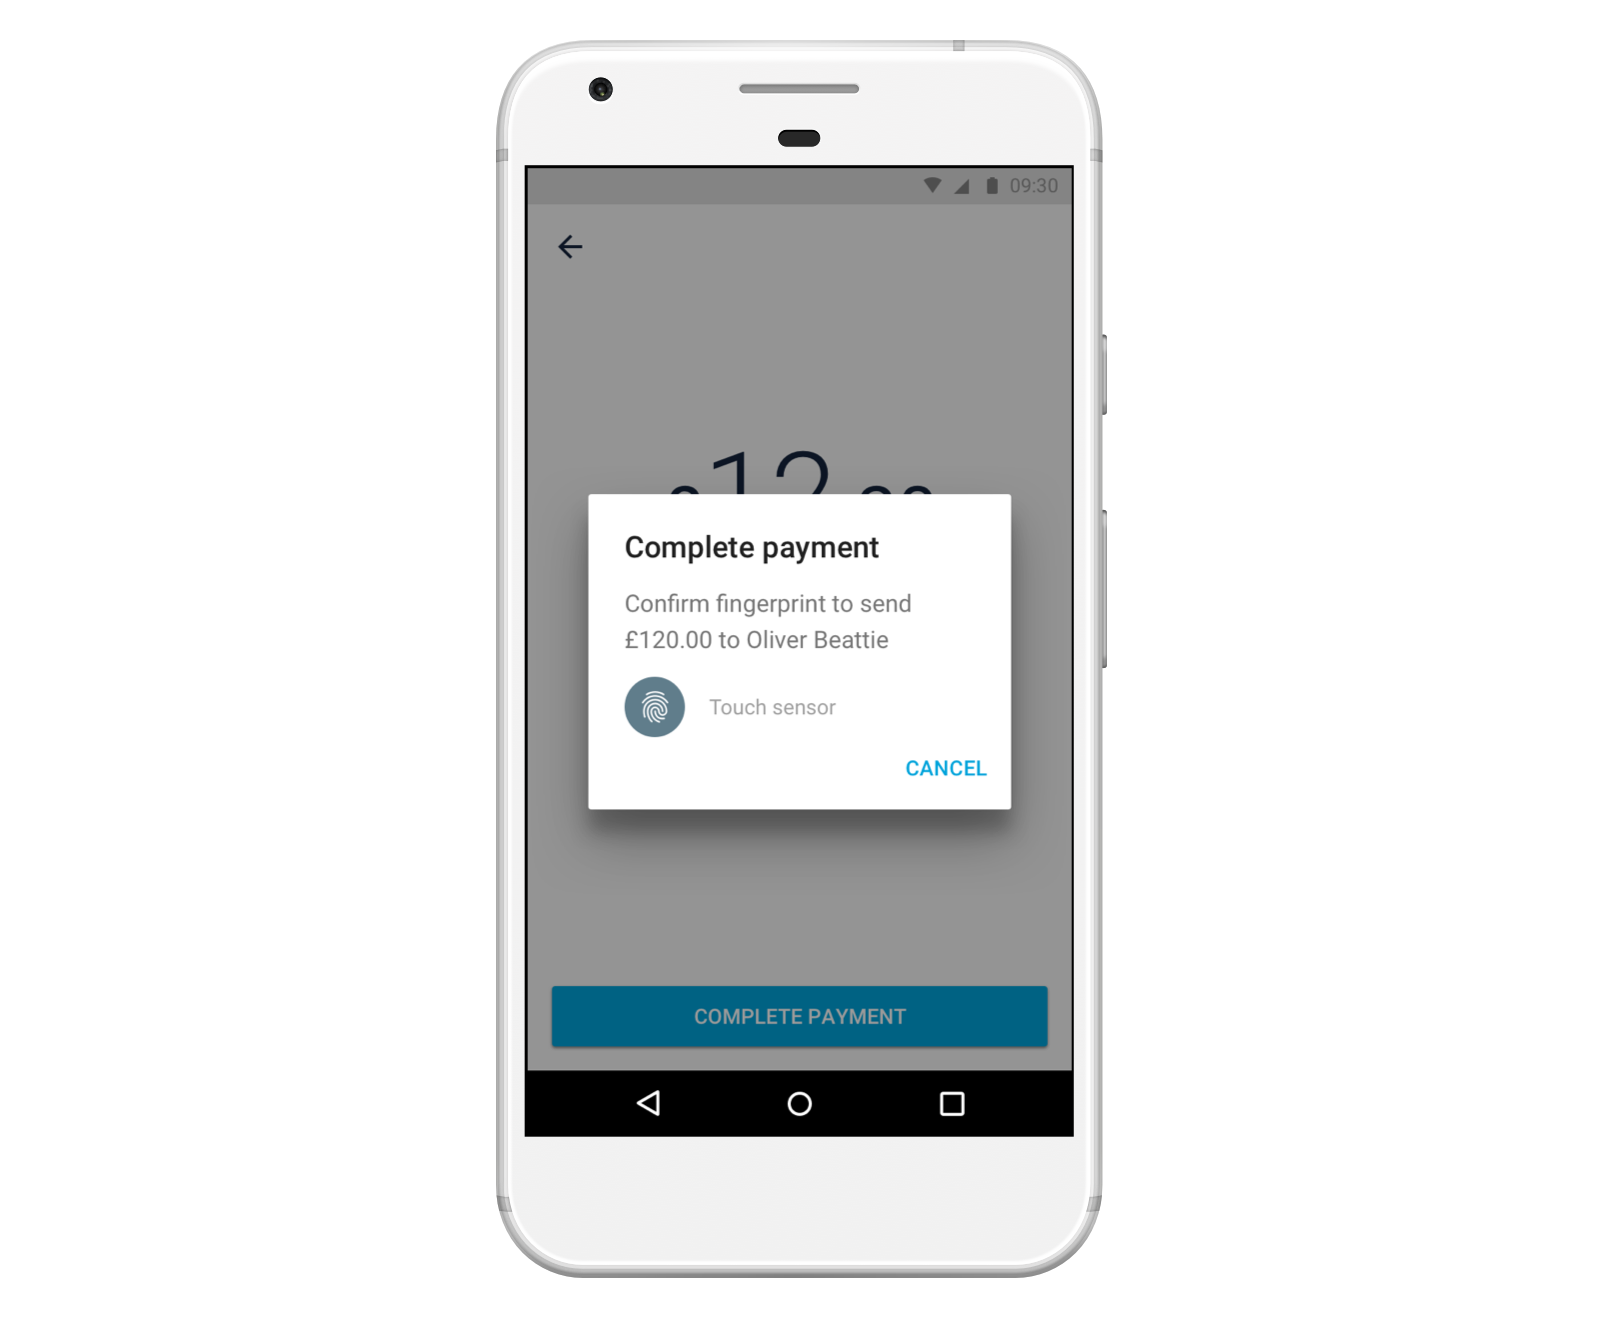 Pay with Fingerprint on Android